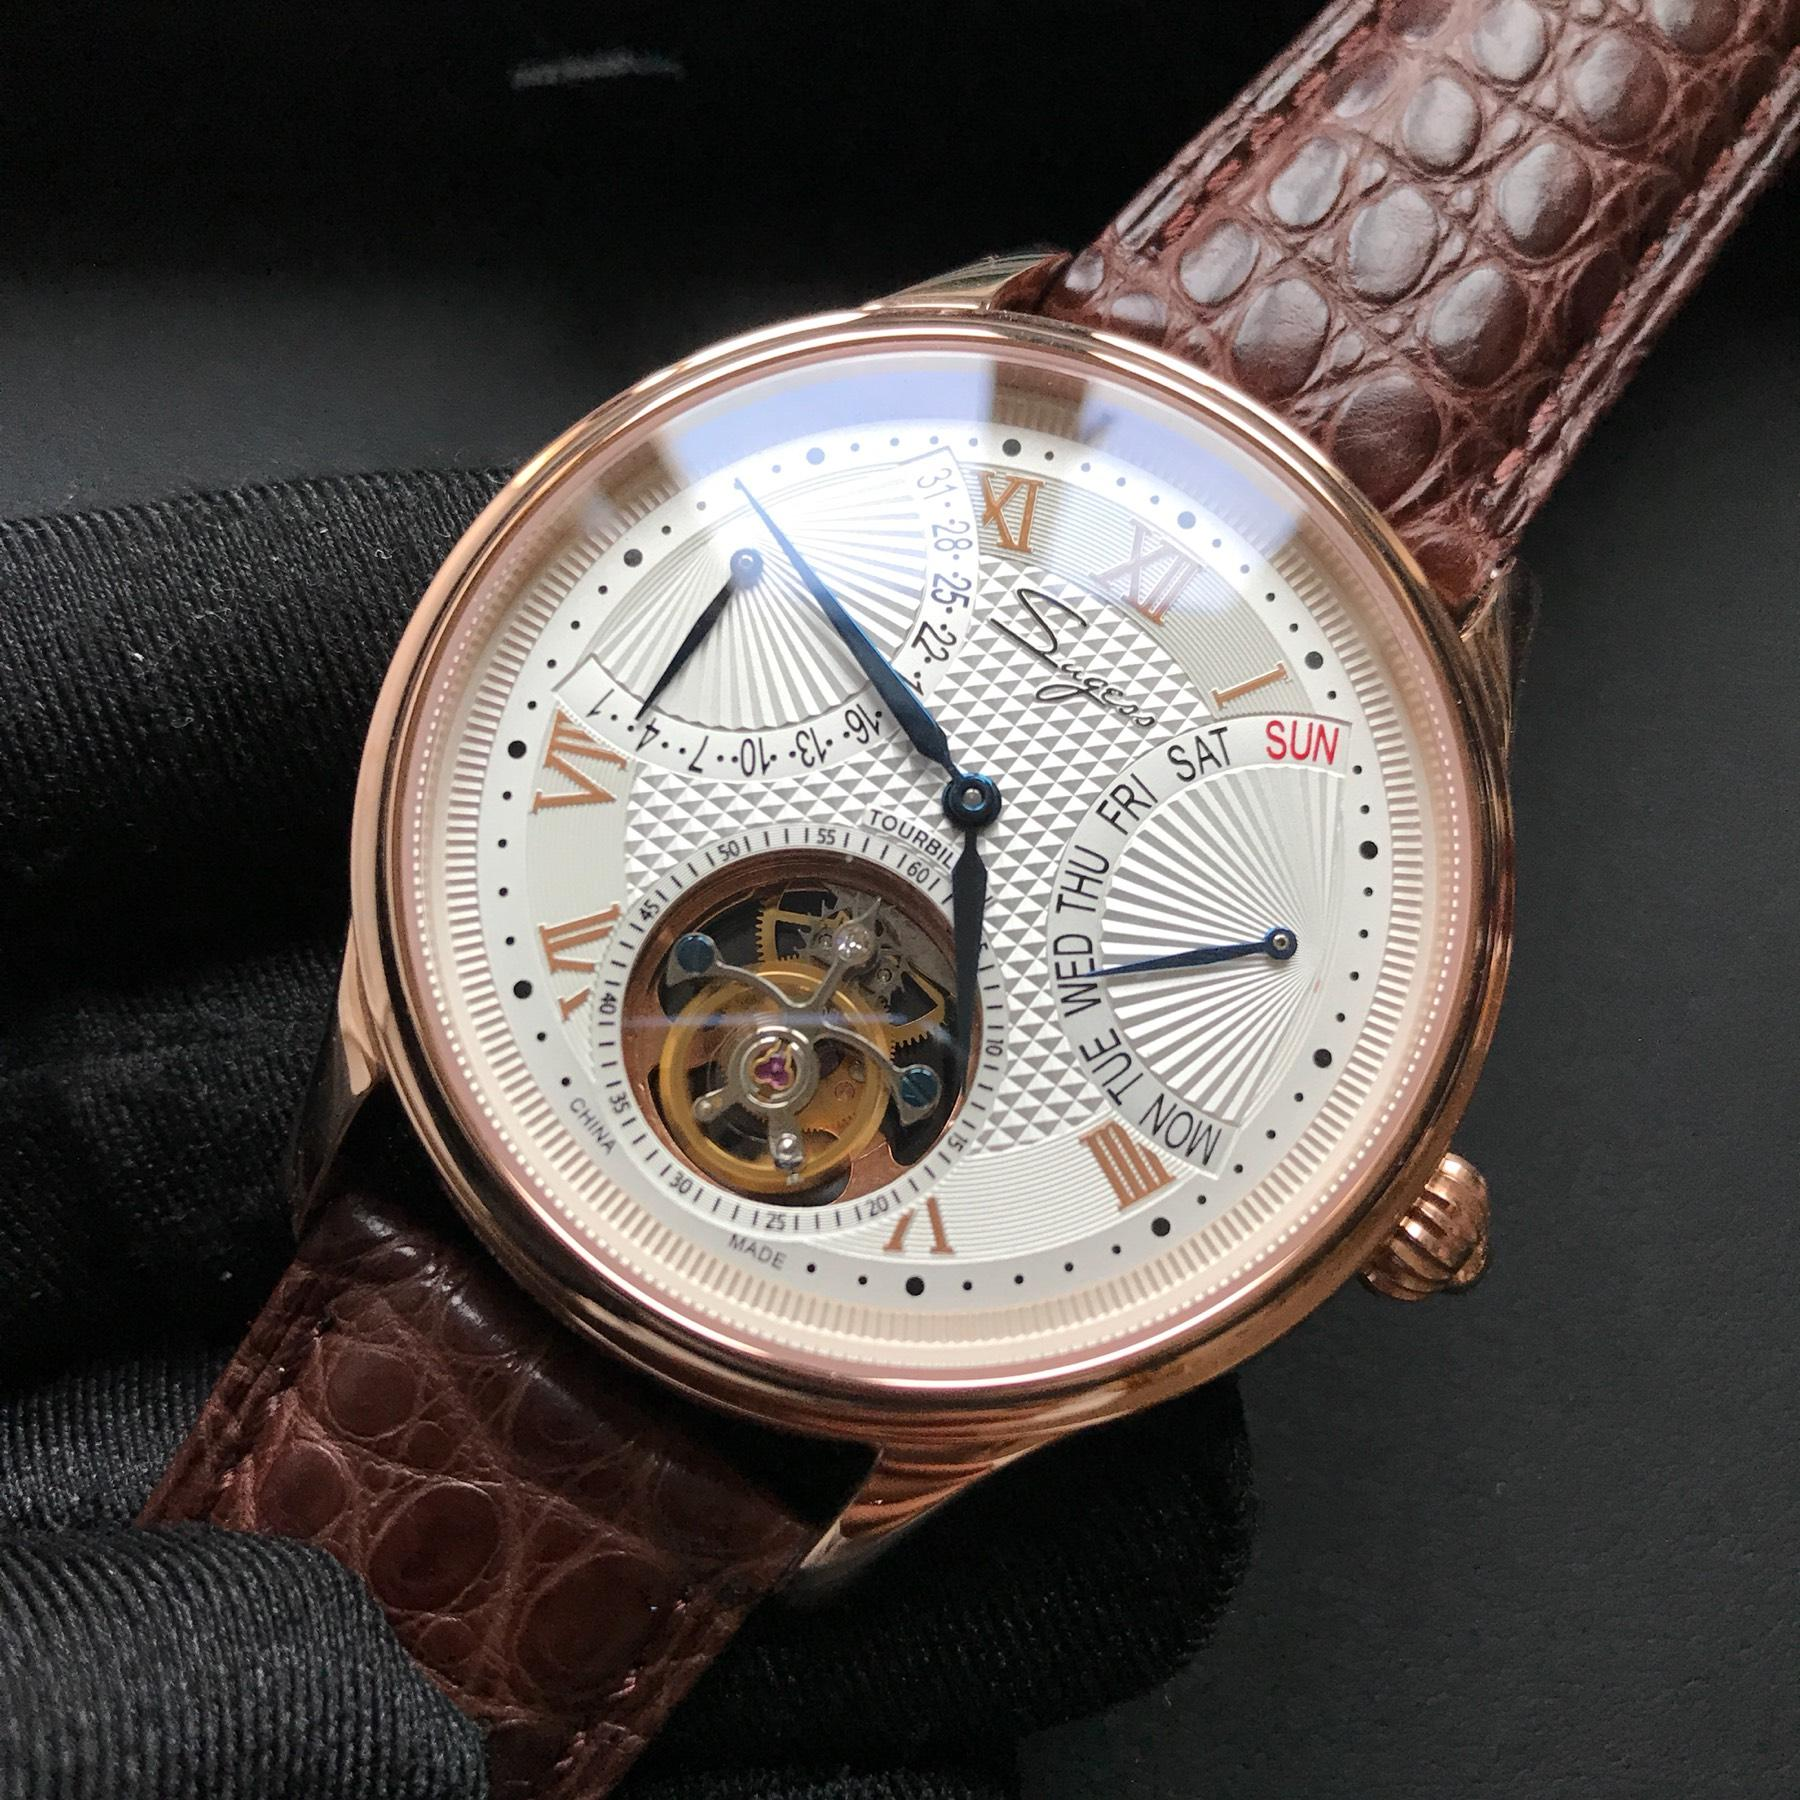 bovet flying amadeo tourbillon watches edouard sihh fleurier